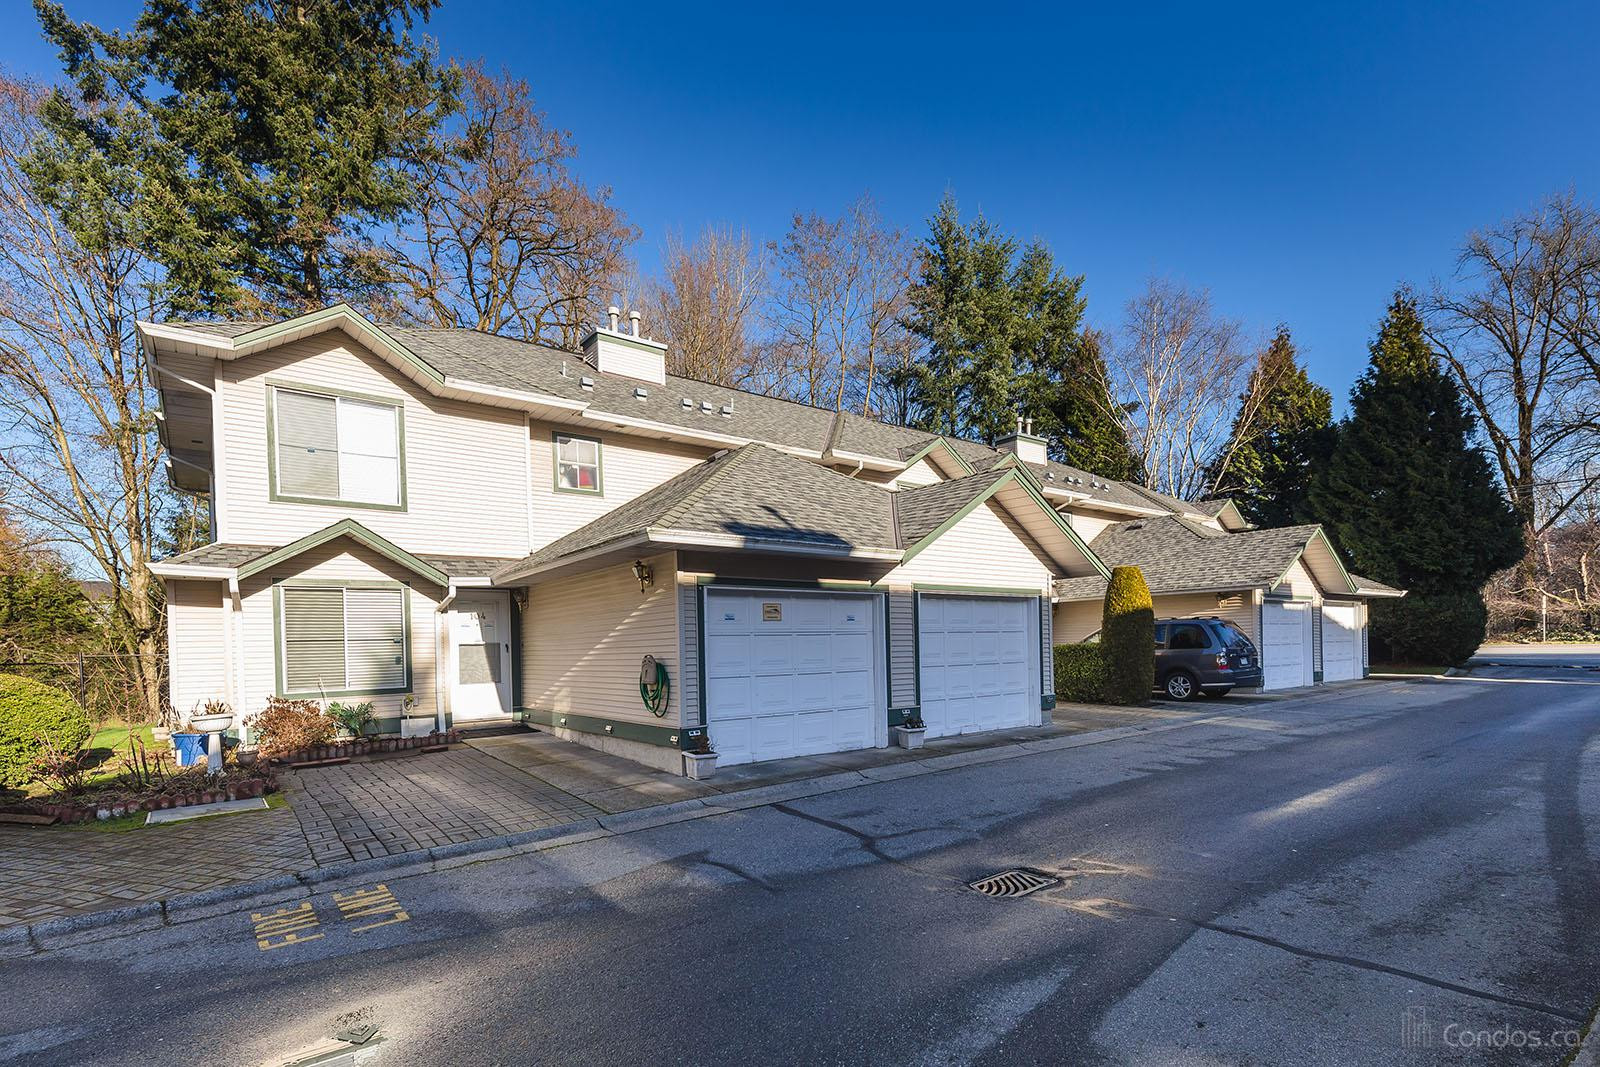 Creekside Village at 8655 King George Blvd, Surrey 1